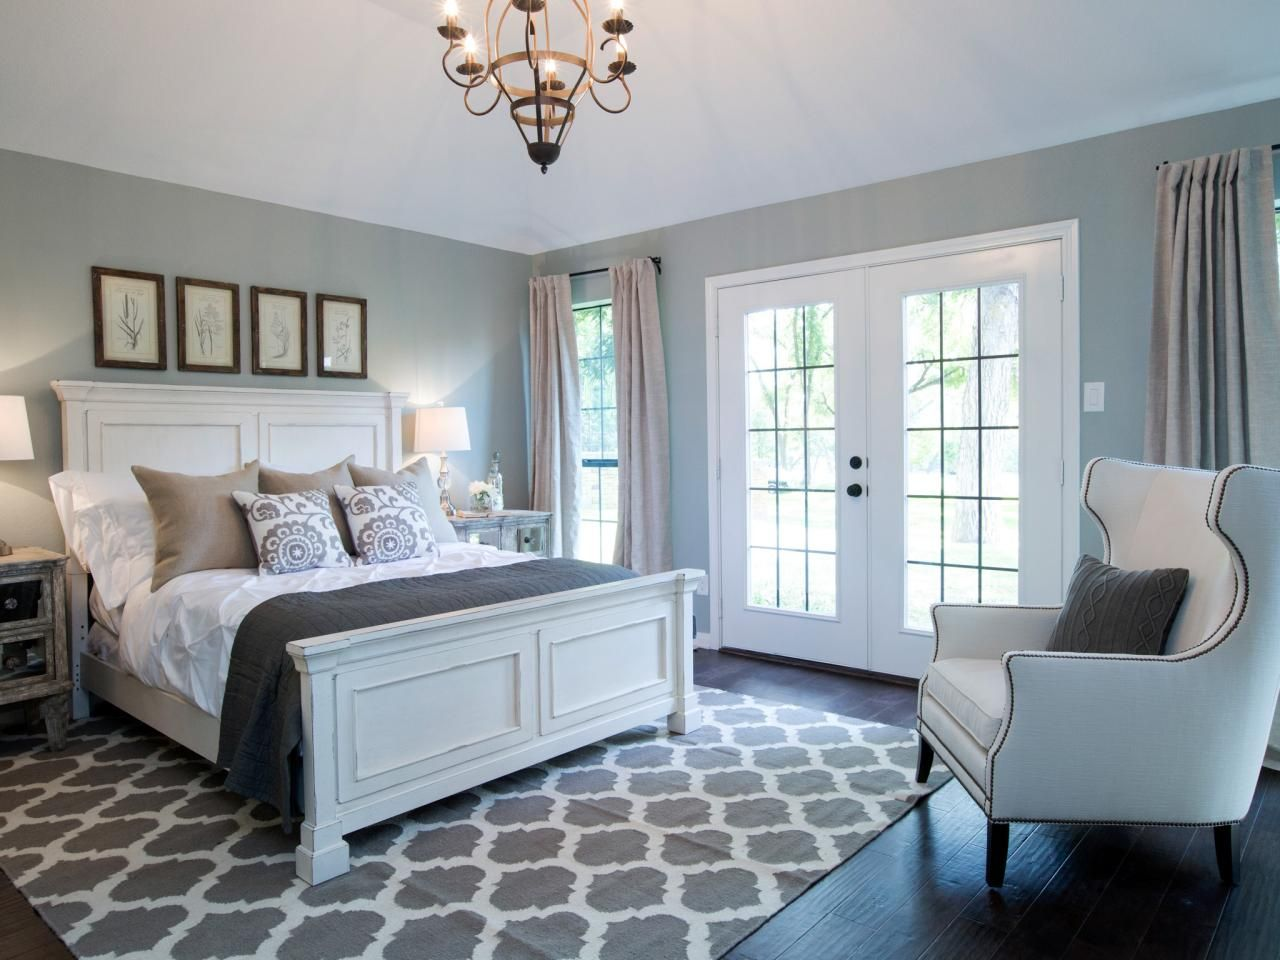 Design Hgtv Bedroom Designs best 25 relaxing master bedroom ideas on pinterest benjamin moore colors